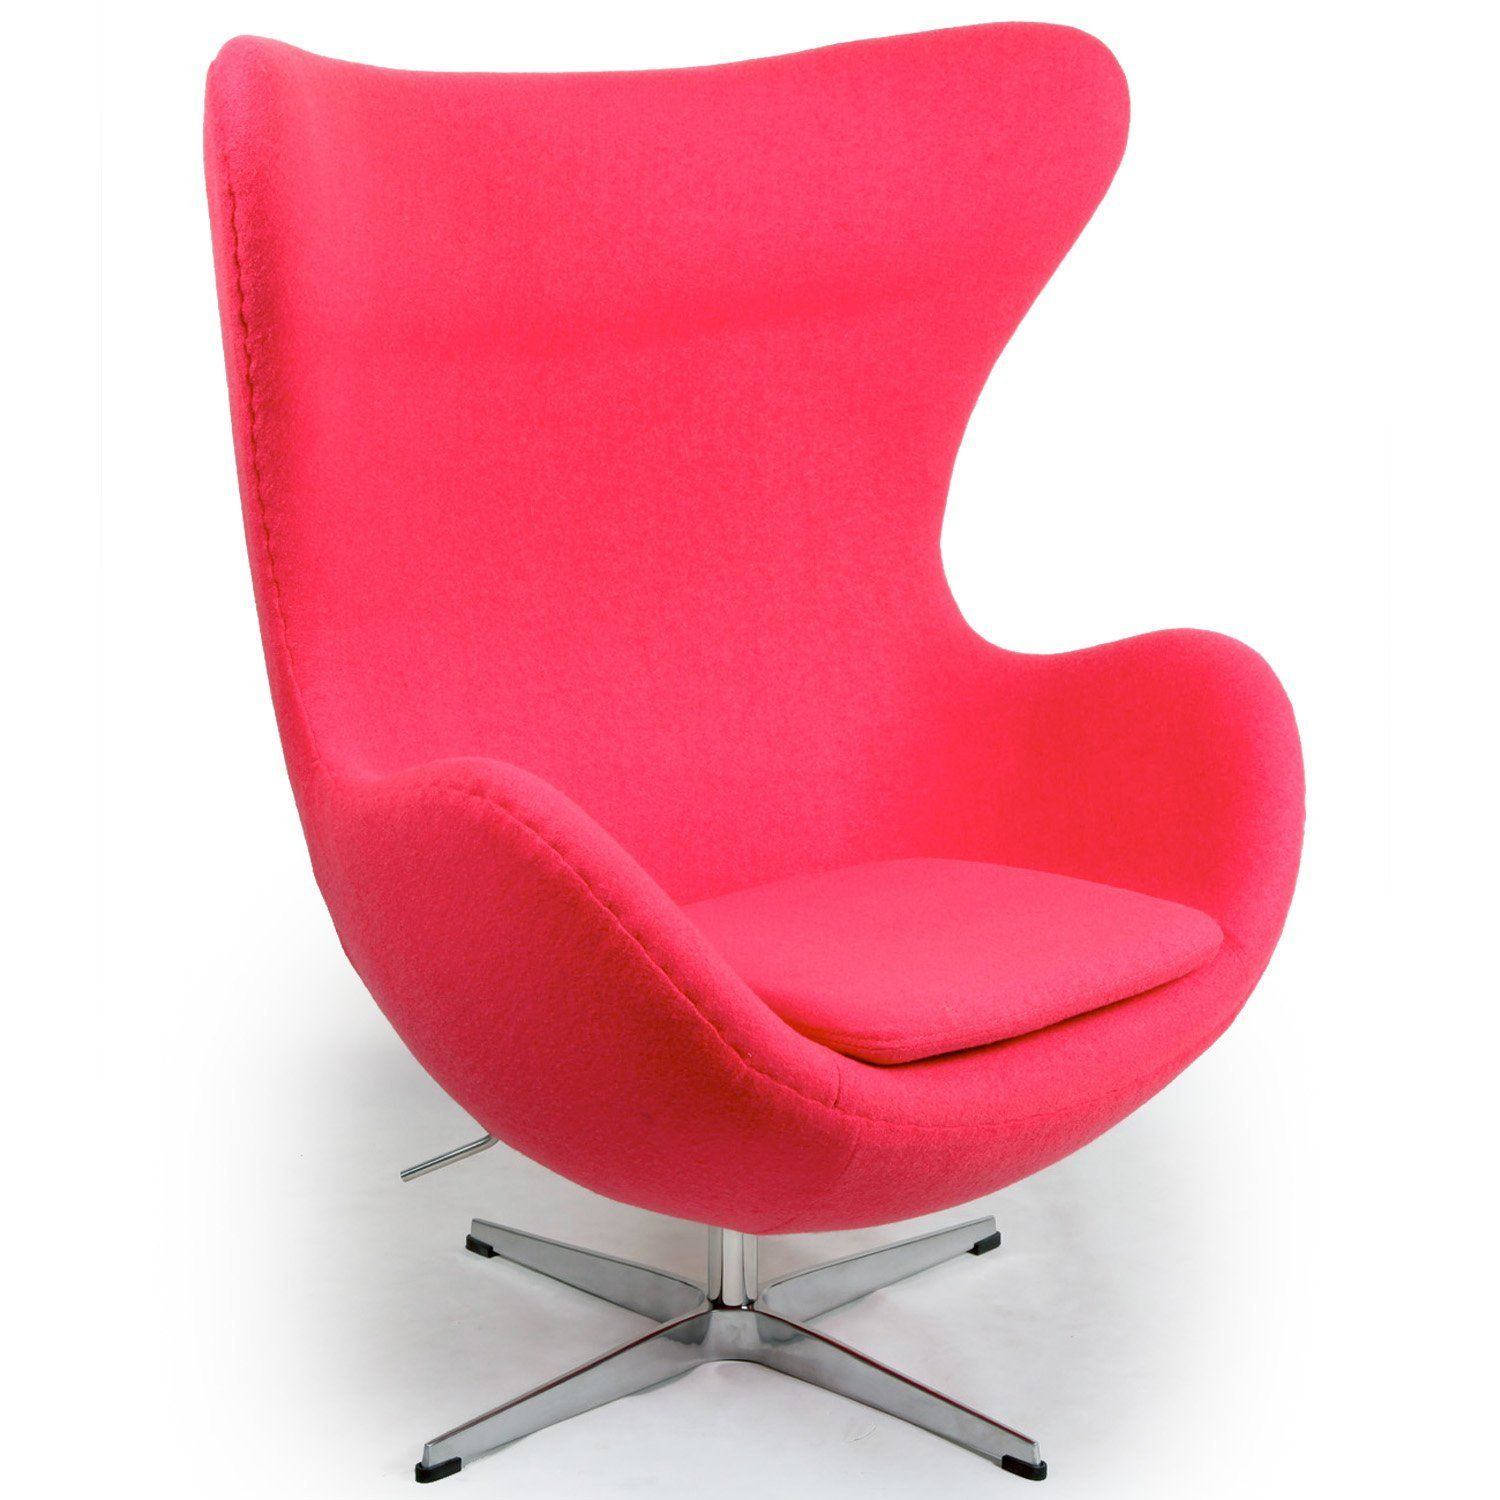 Funky Chairs for Teens | Funky Pink Chairs for Teen Girls: Kardiel ...